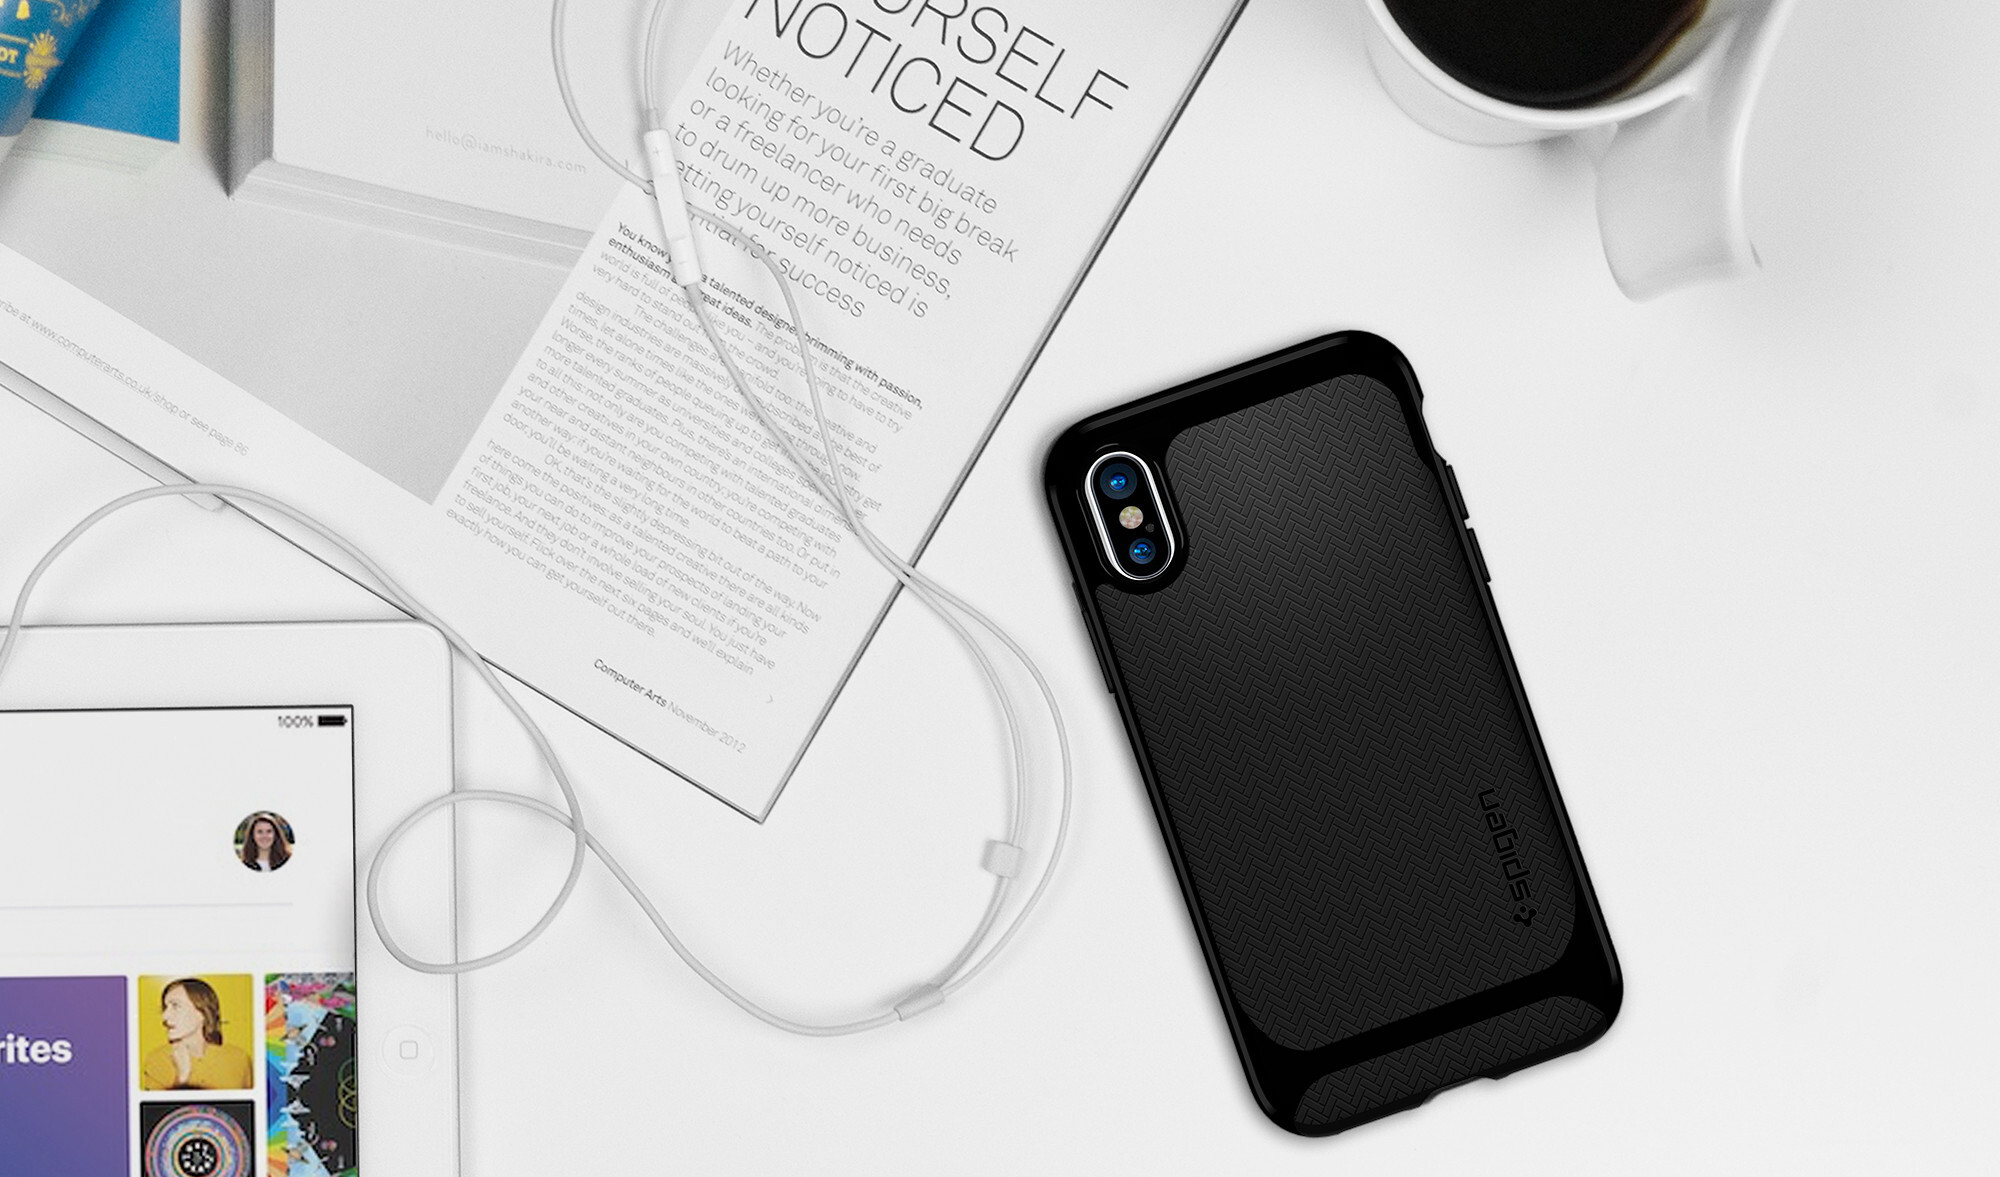 Spigens Case Lines Updated To Cover The Iphone 8 Plus And X Spigen Wallet S Leather Original Casing Neo Hybrid Series